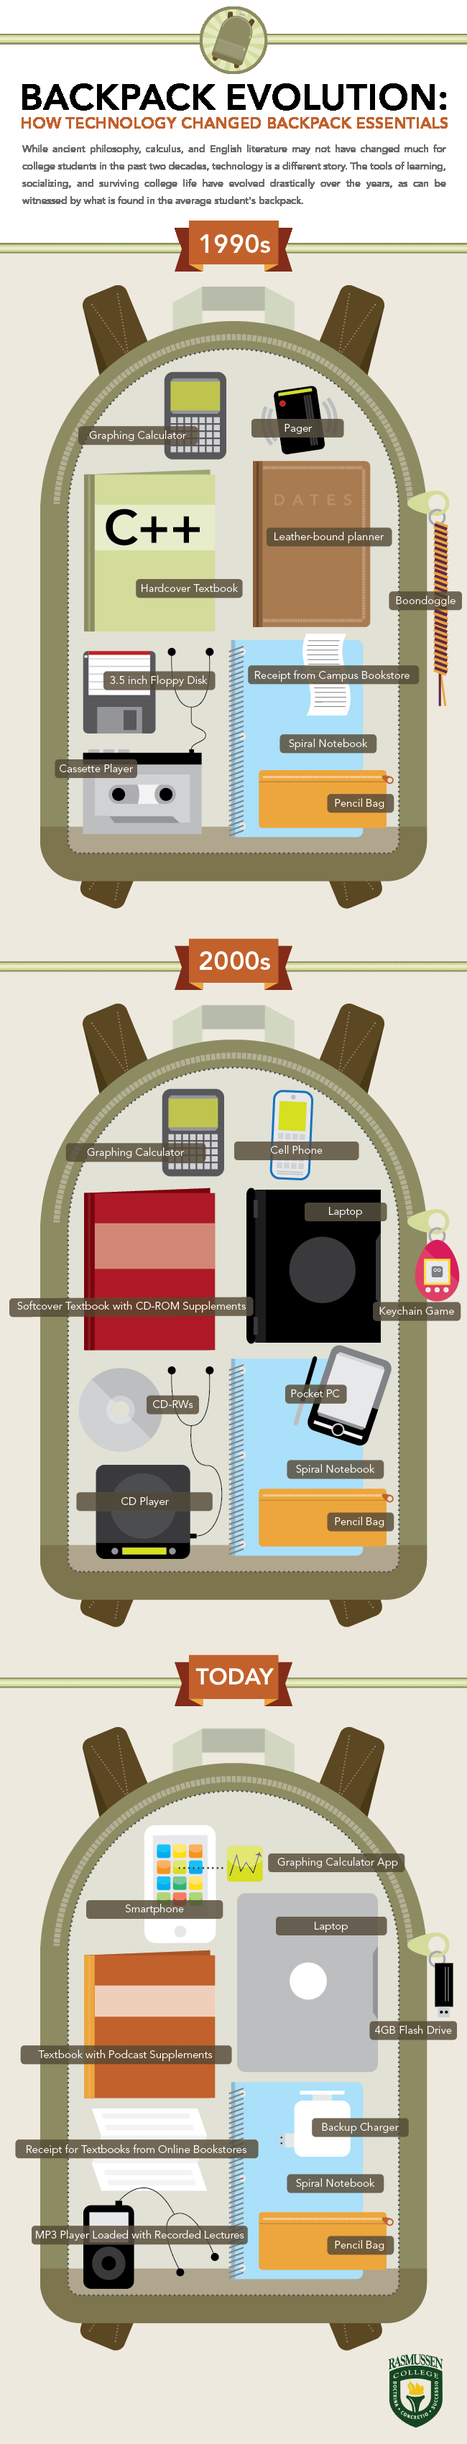 Backpack Evolution: How Technology Changed Backpack Essentials | Best practices in Education & Counseling | Scoop.it